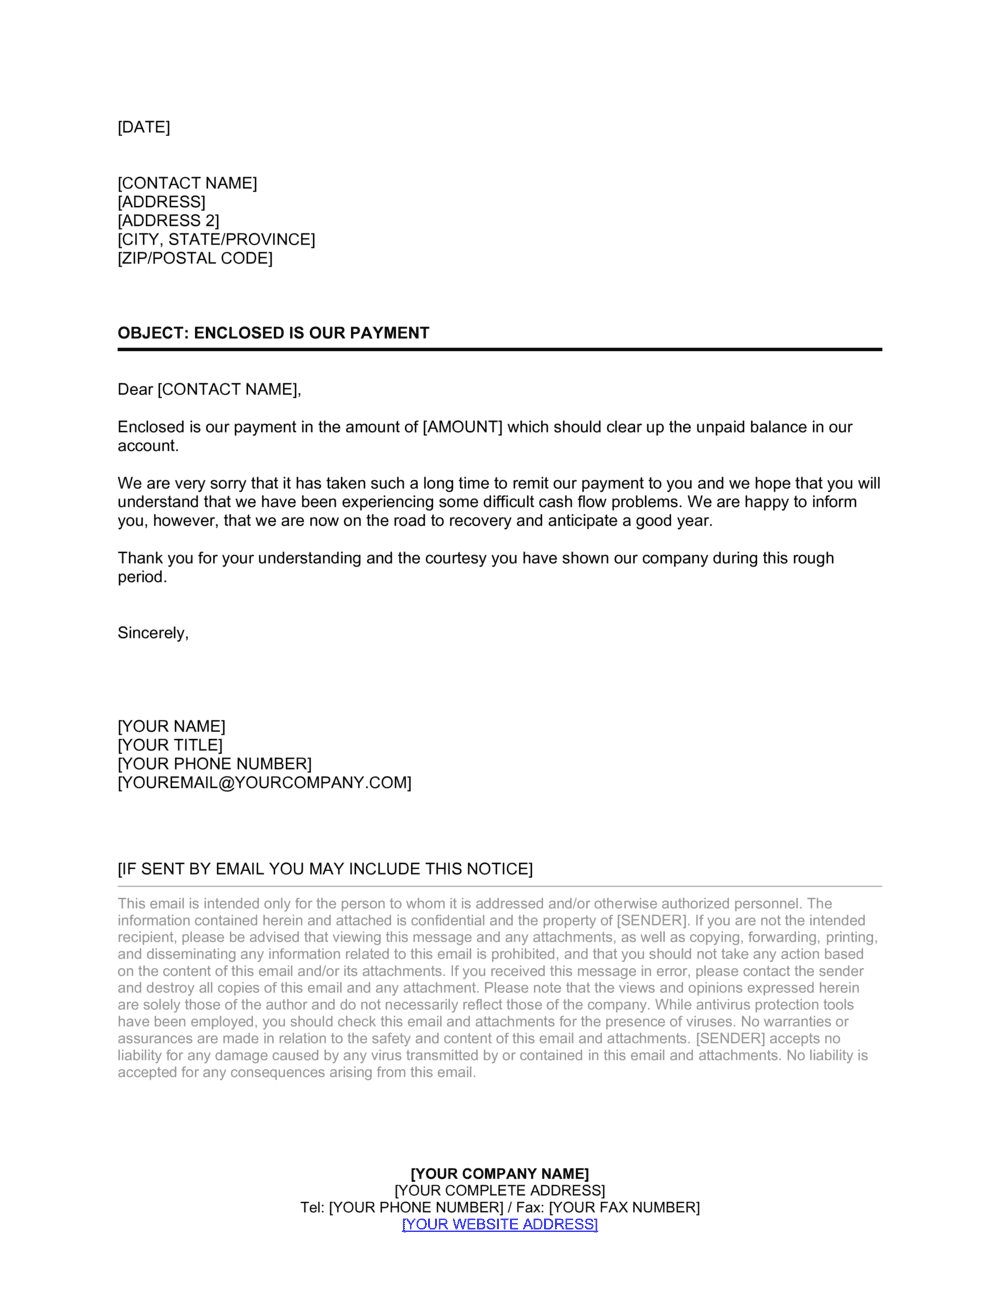 Business-in-a-Box's Late Payment Letter Template